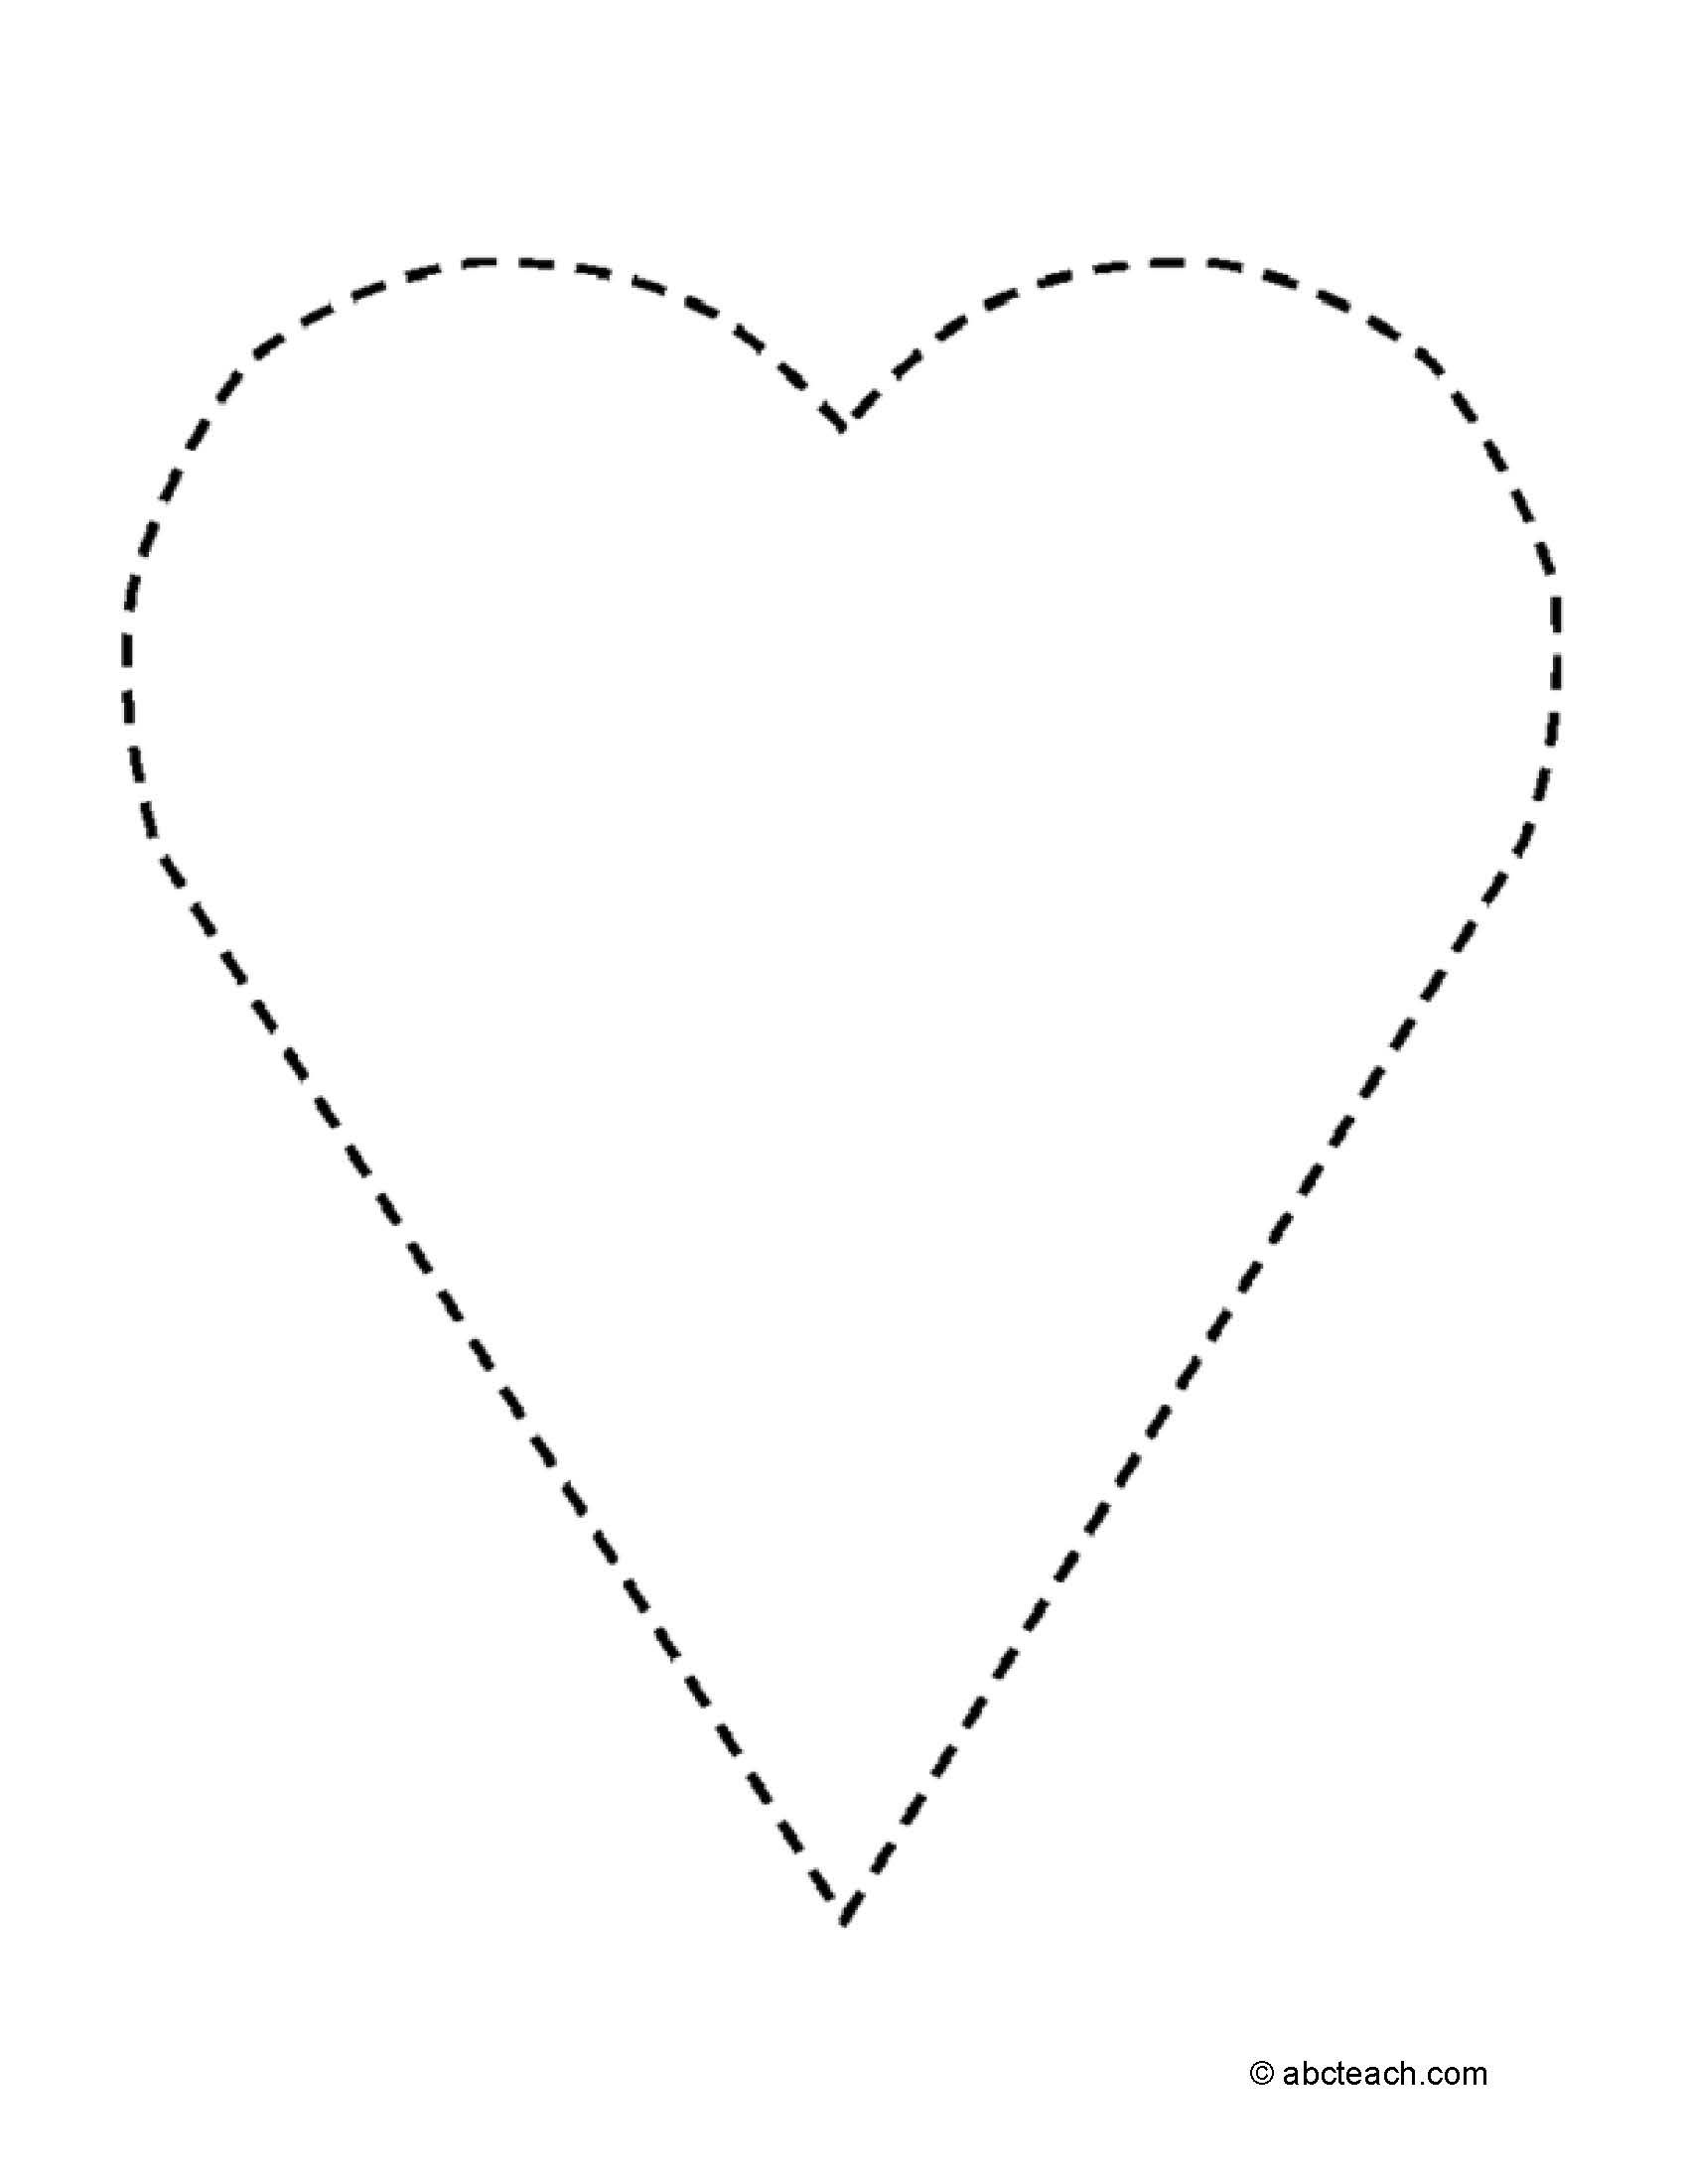 Hearts Worksheet For Preschoolers